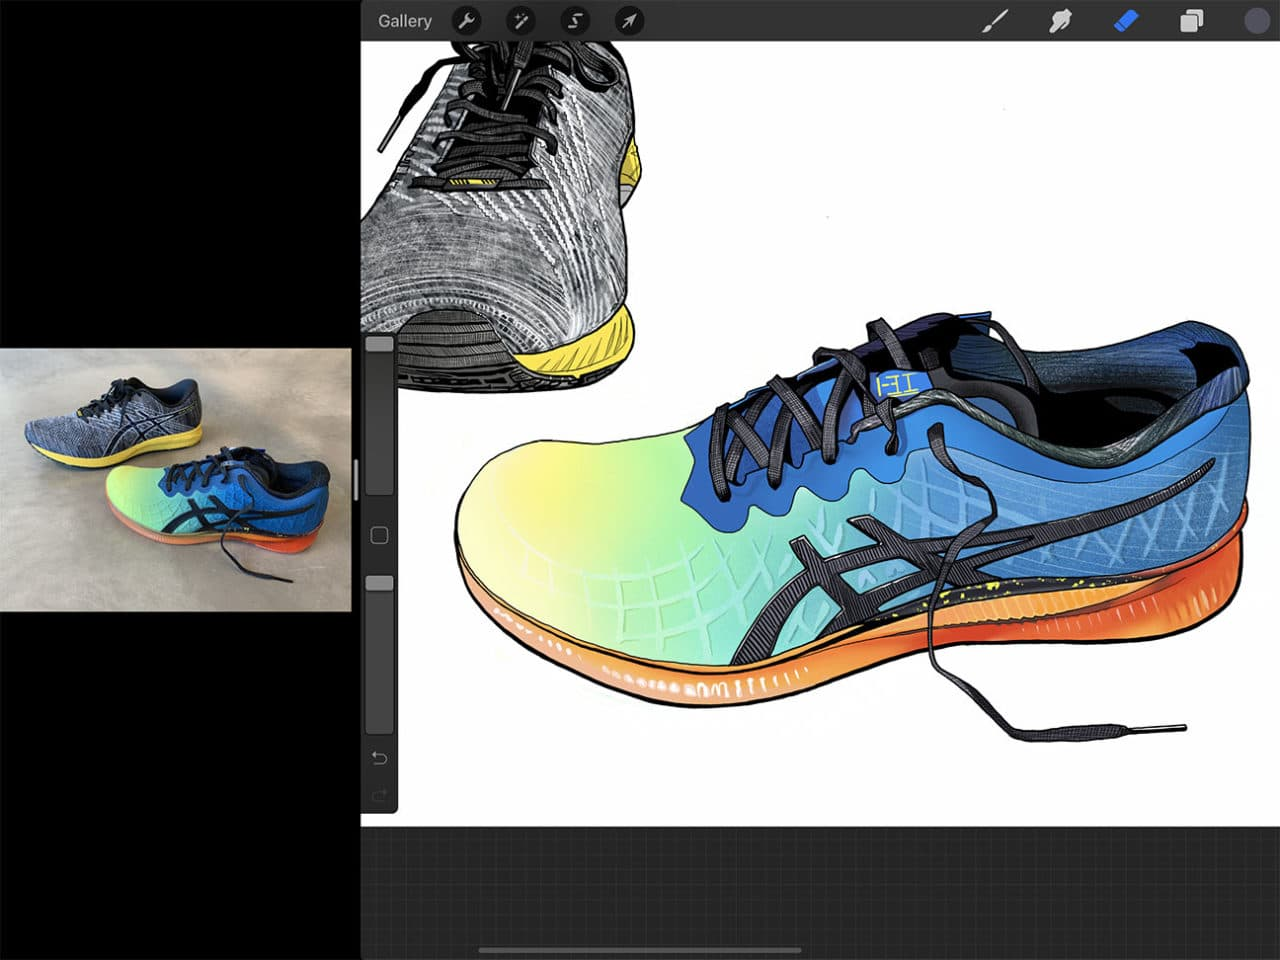 How to draw shoes is only the first of many things you can learn by drawing on iPad Pro.